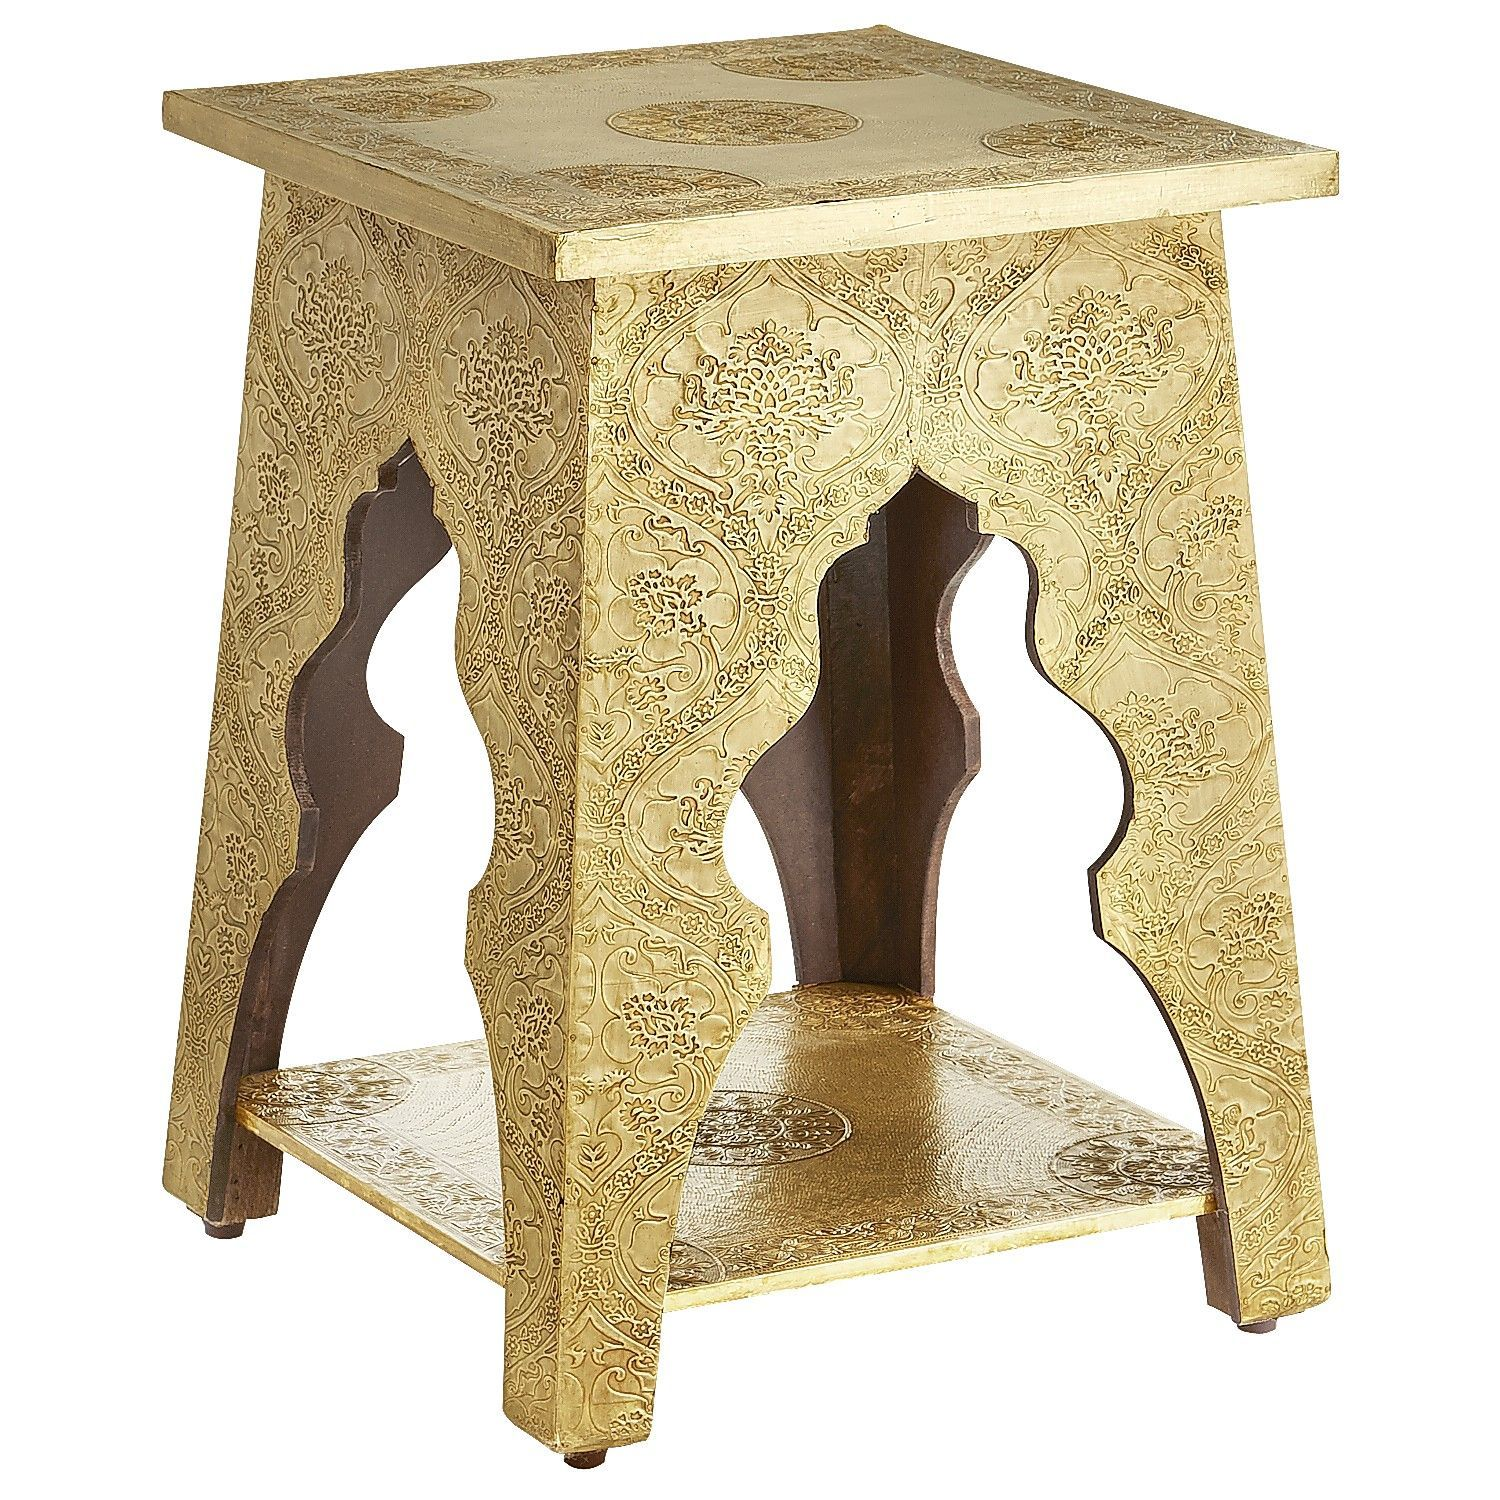 Marrakesh Accent Table Brass Pier 1 Imports Brass Accent